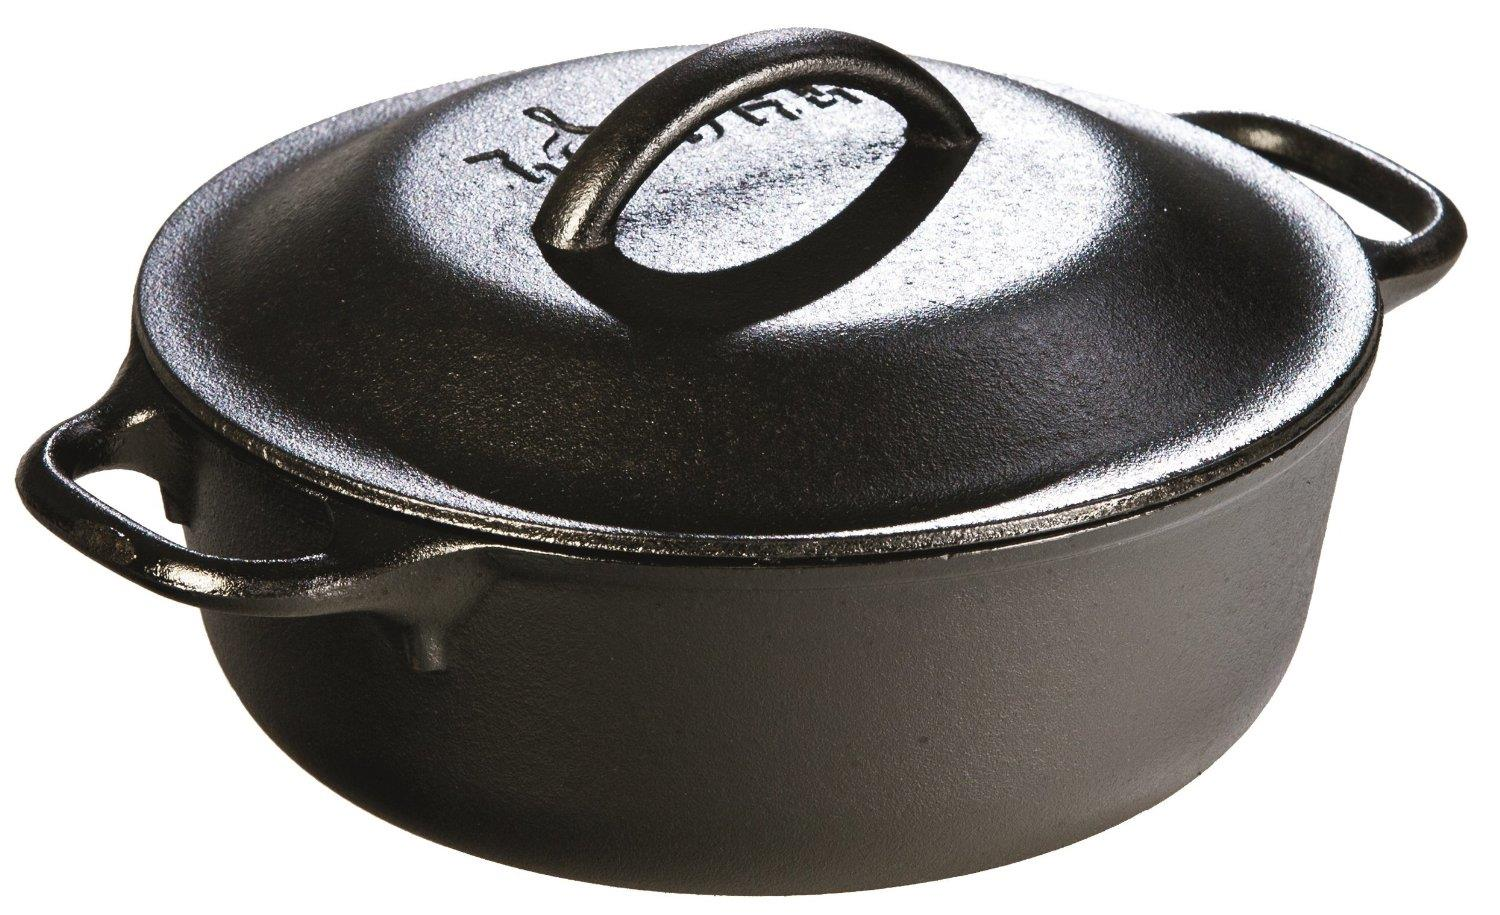 Lodge L2SP3 Pre-Seasoned Cast-Iron Serving Pot, 2-Quart